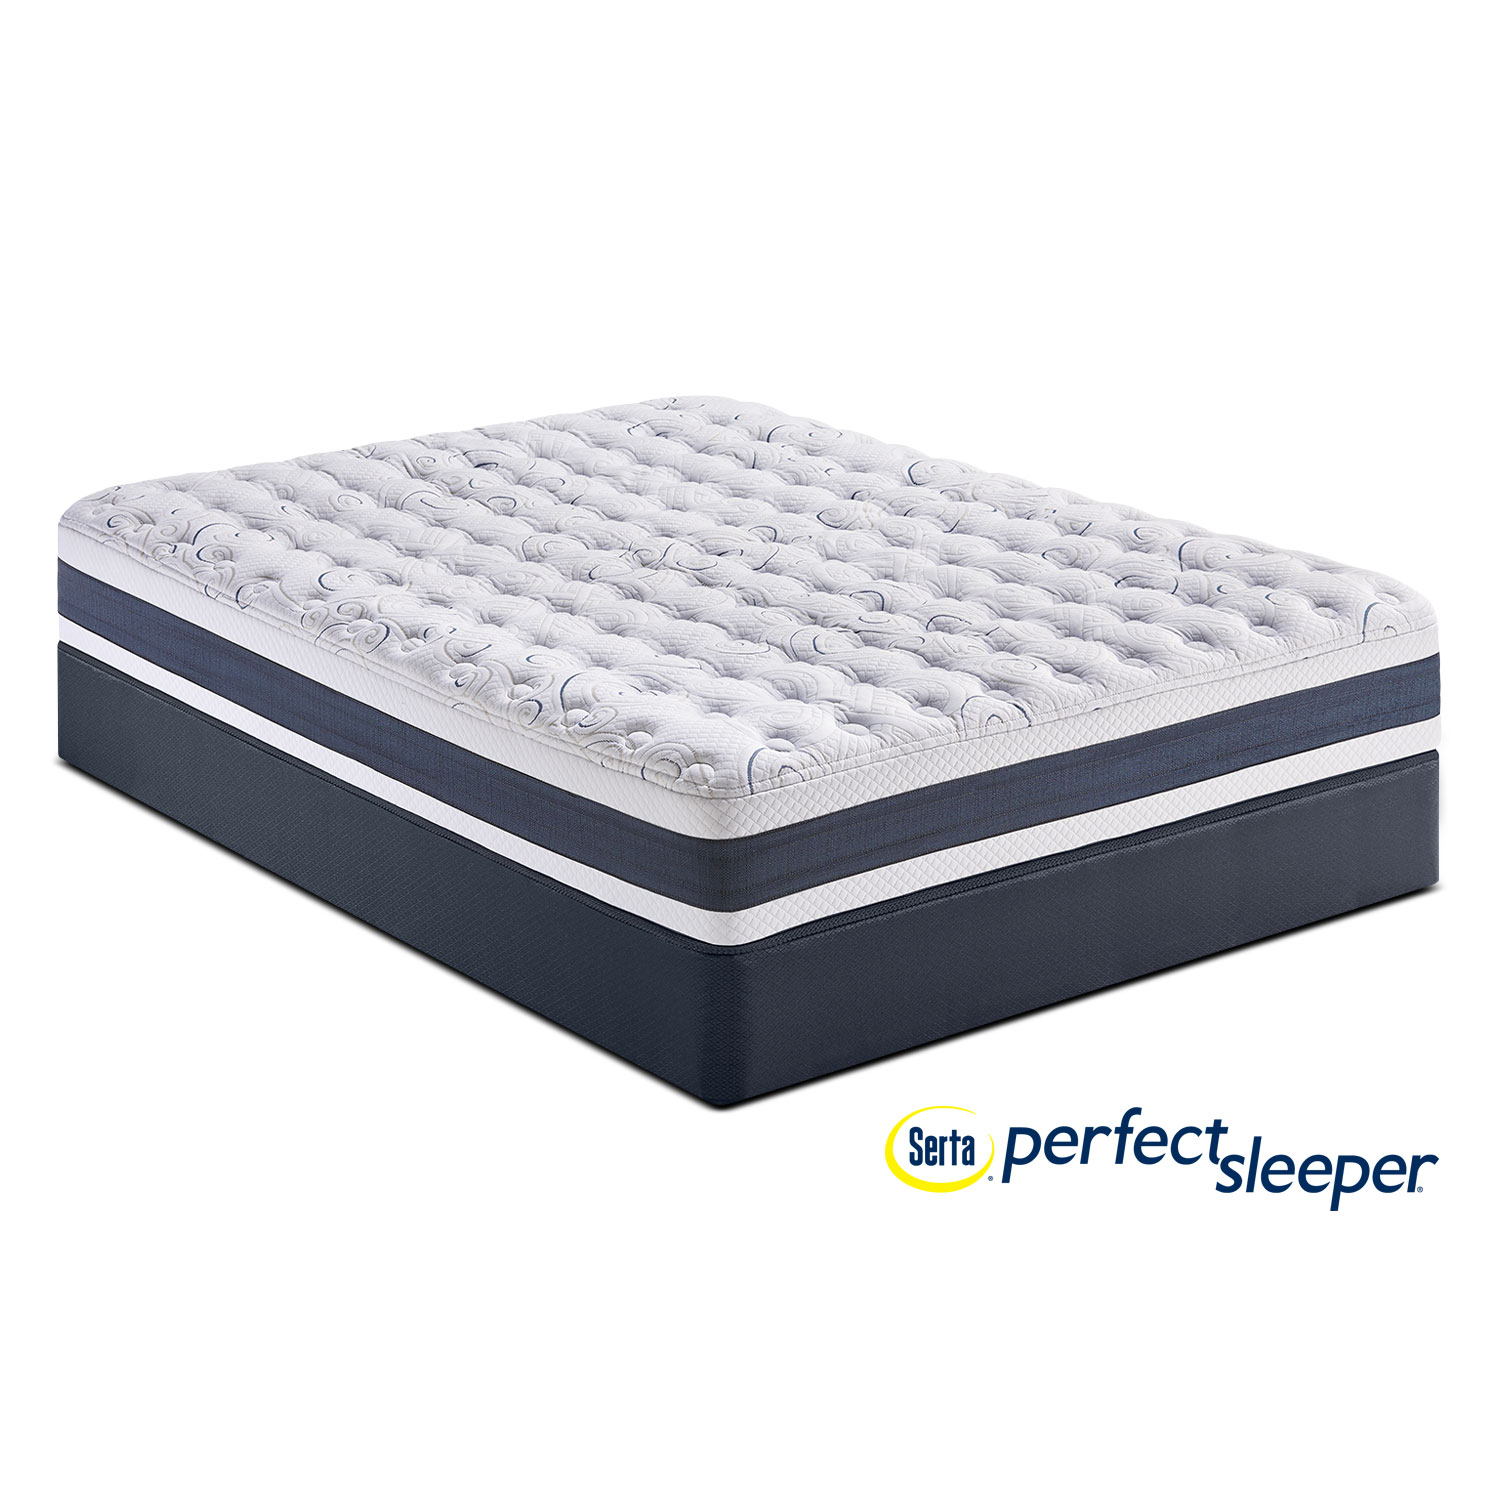 Mattresses and Bedding - Strathfield Firm Twin Mattress and Low-Profile Foundation Set